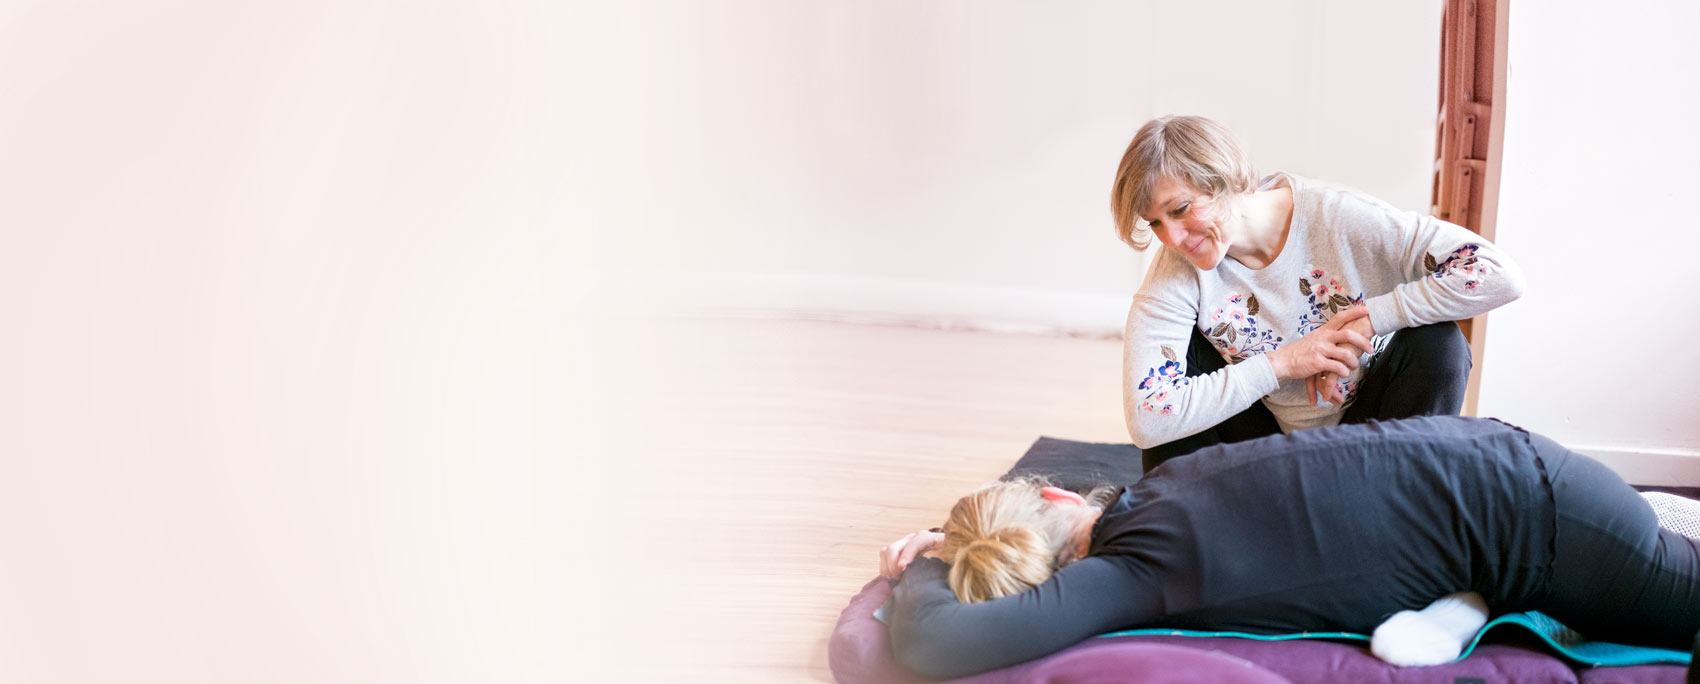 Private yoga coaching with José de groot - Yin yoga - YogaTreat.eu